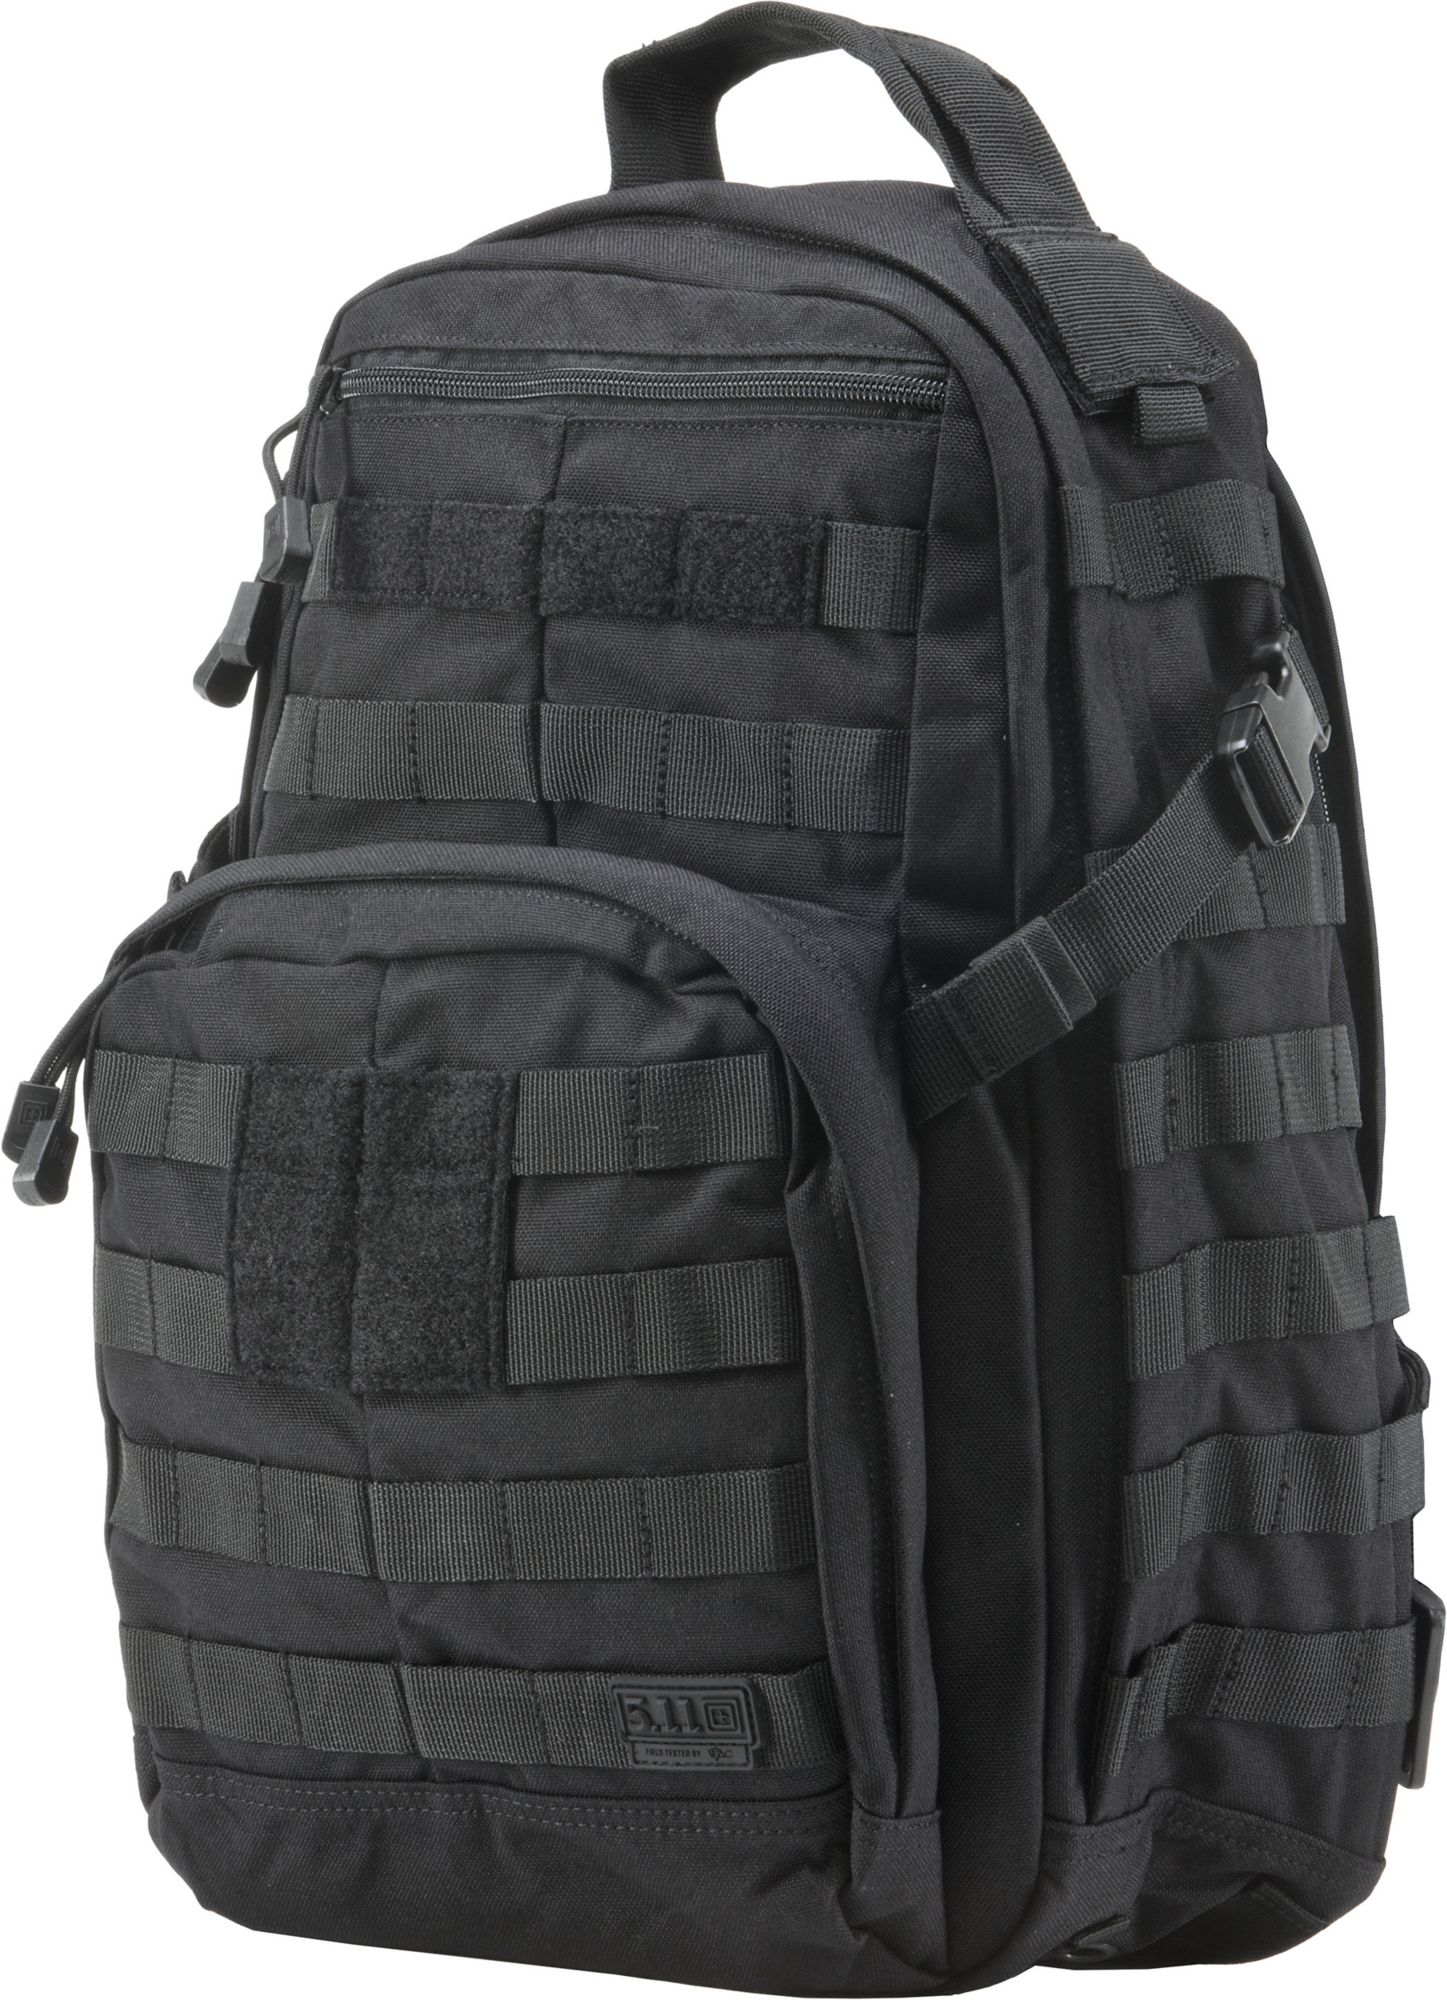 5.11 Tactical Rush 12 Backpack, Black